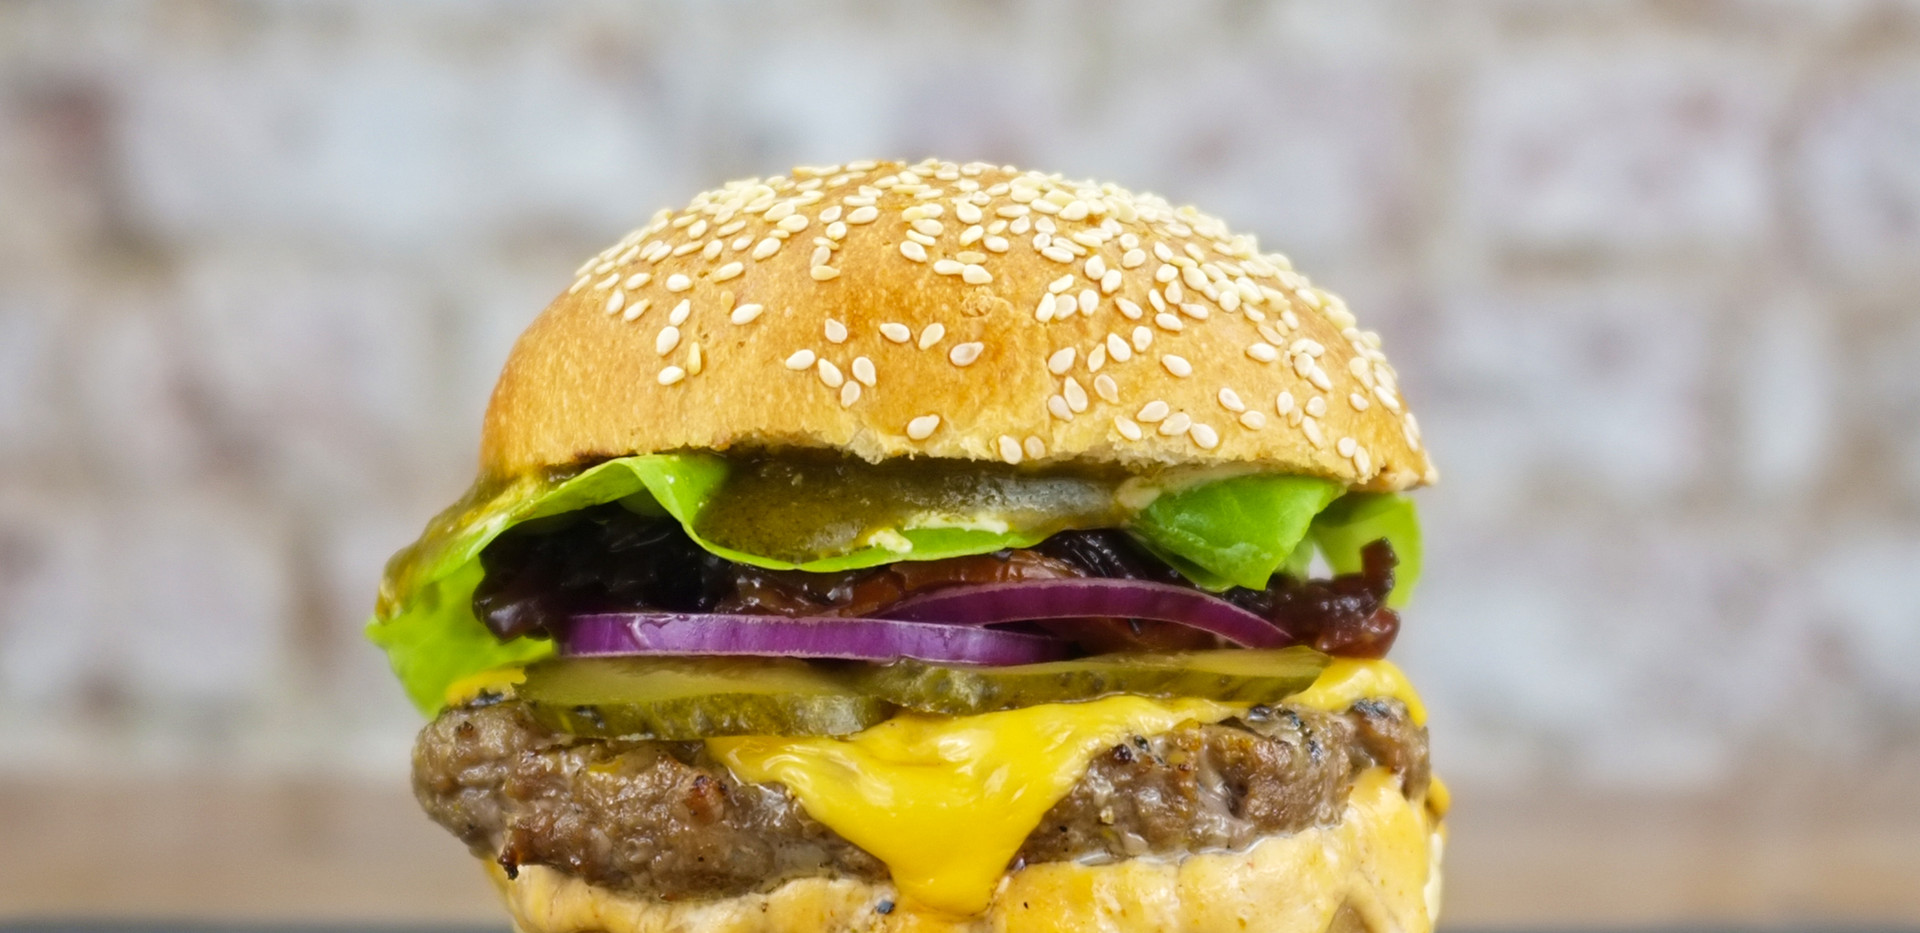 BUK'S CLASSIC CHEF'S BEEF WITH AMERICAN CHEESE